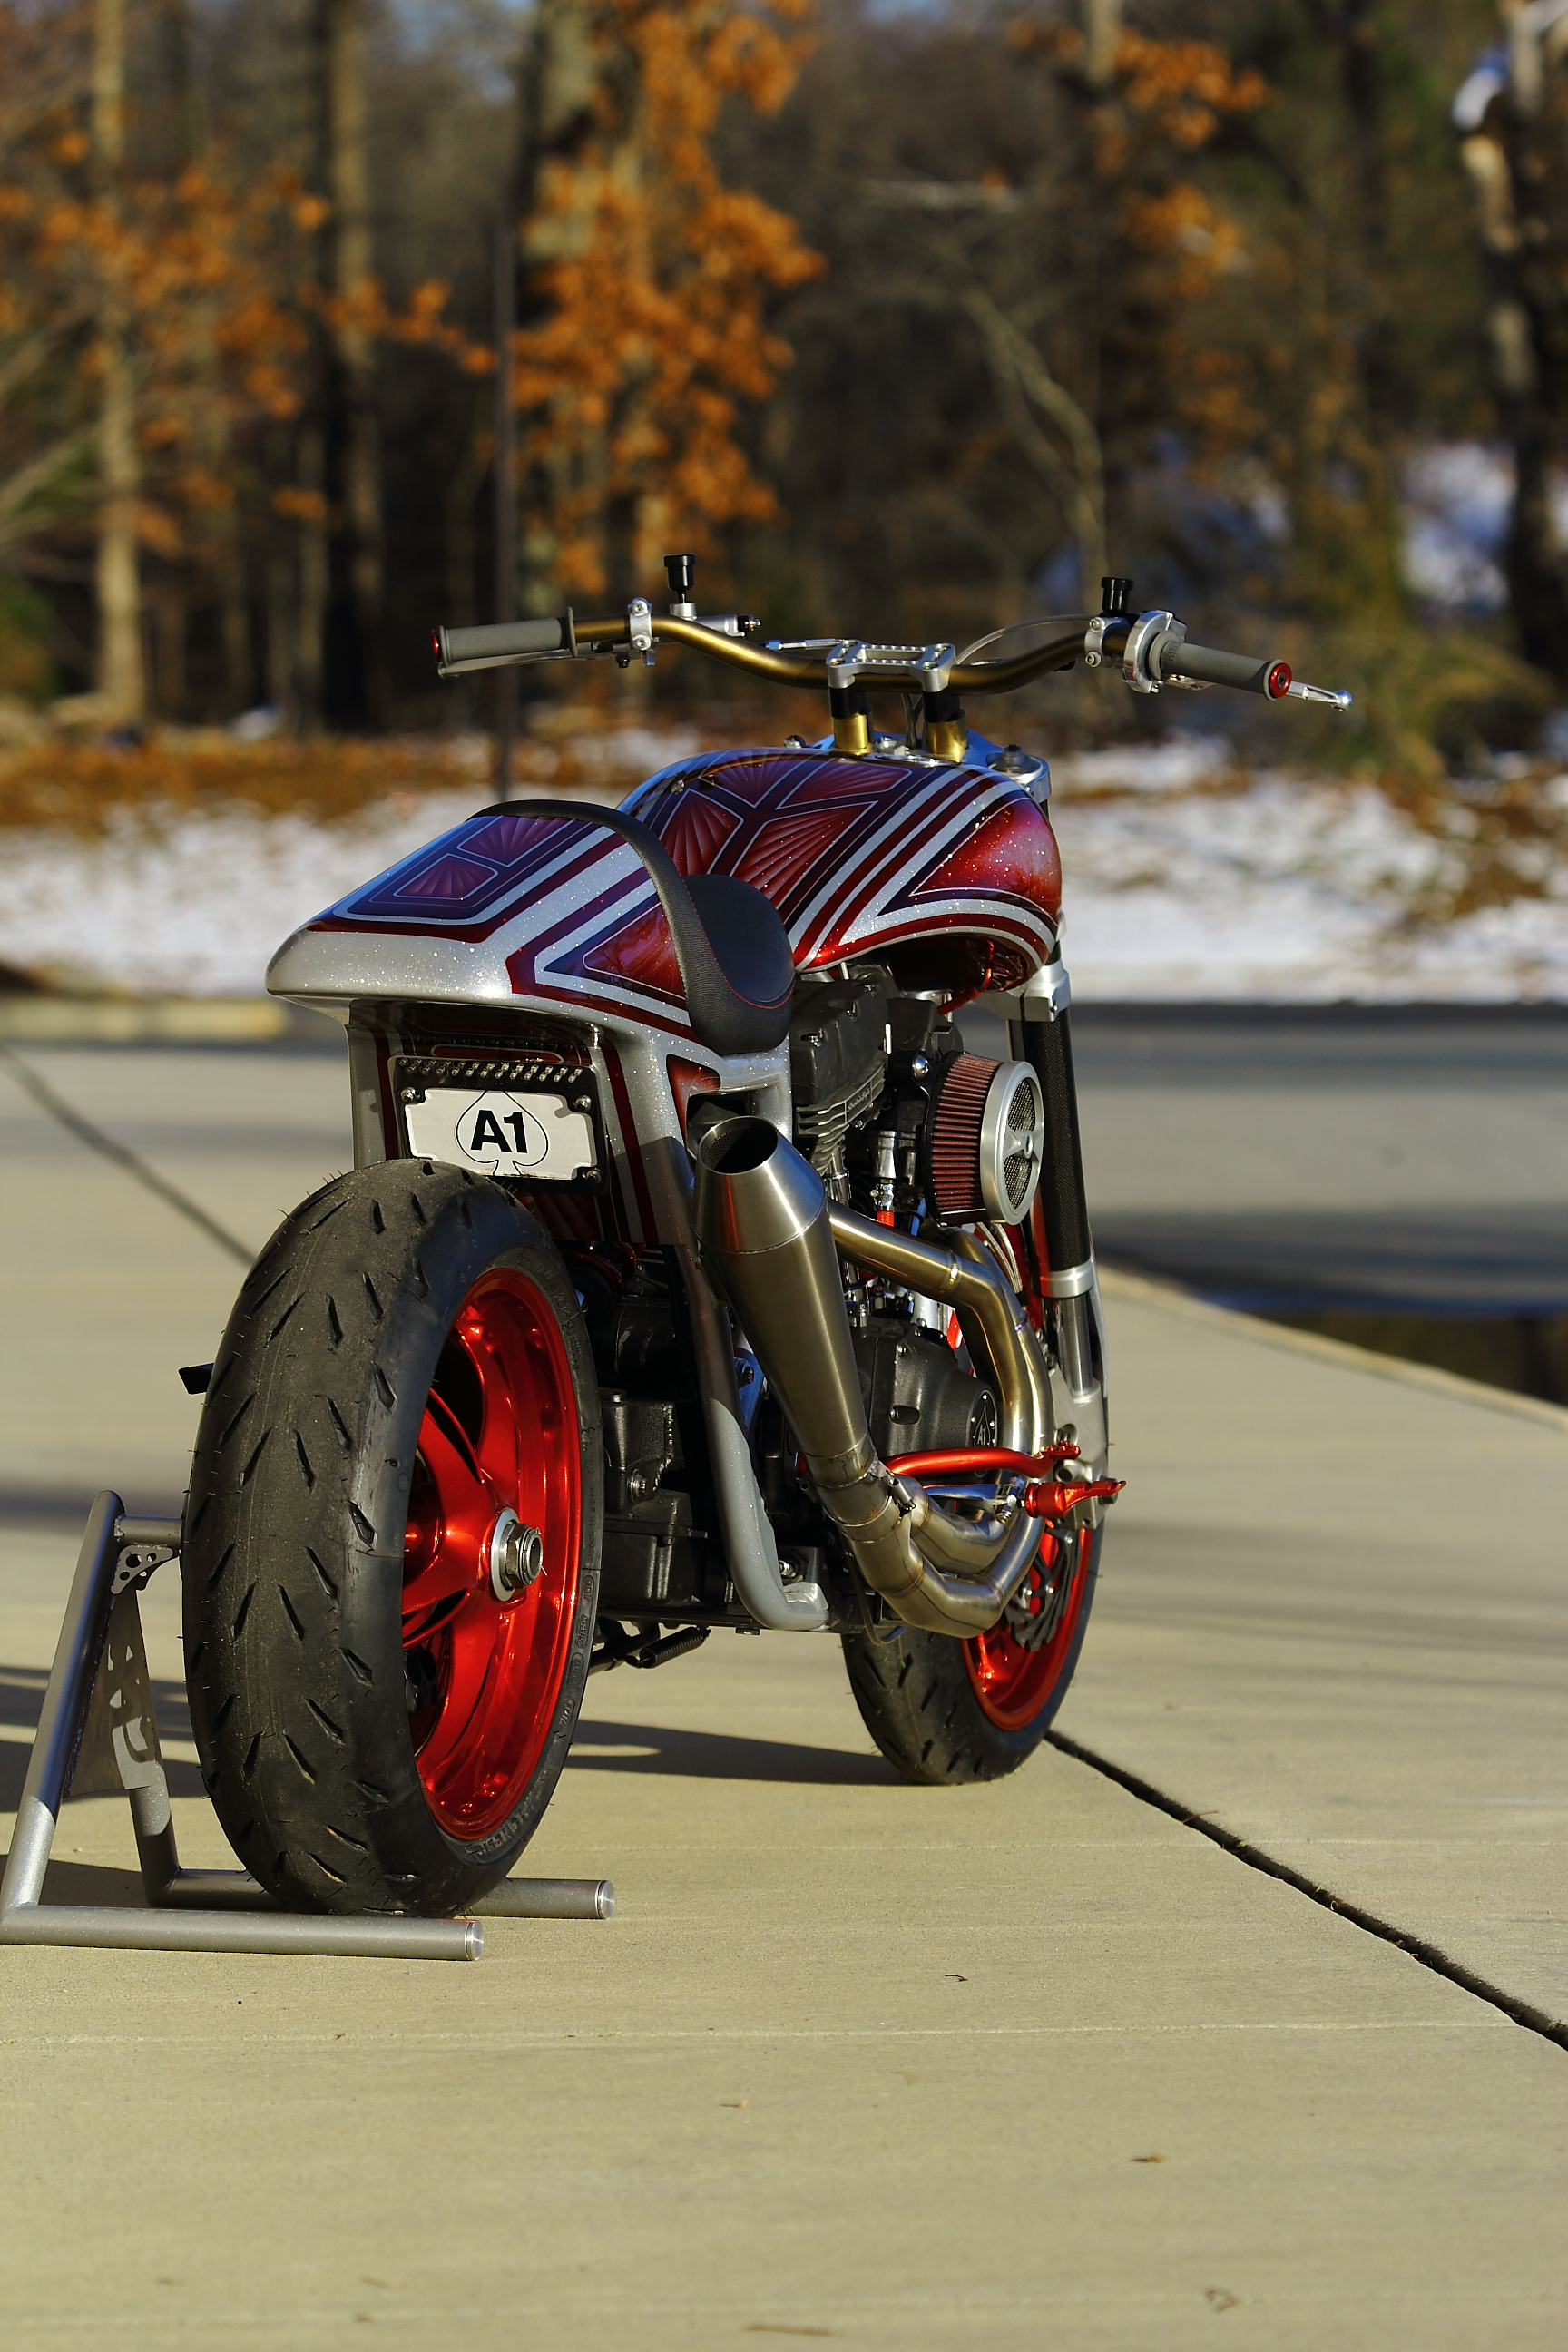 A1Cycles-AngryBitch048.JPG